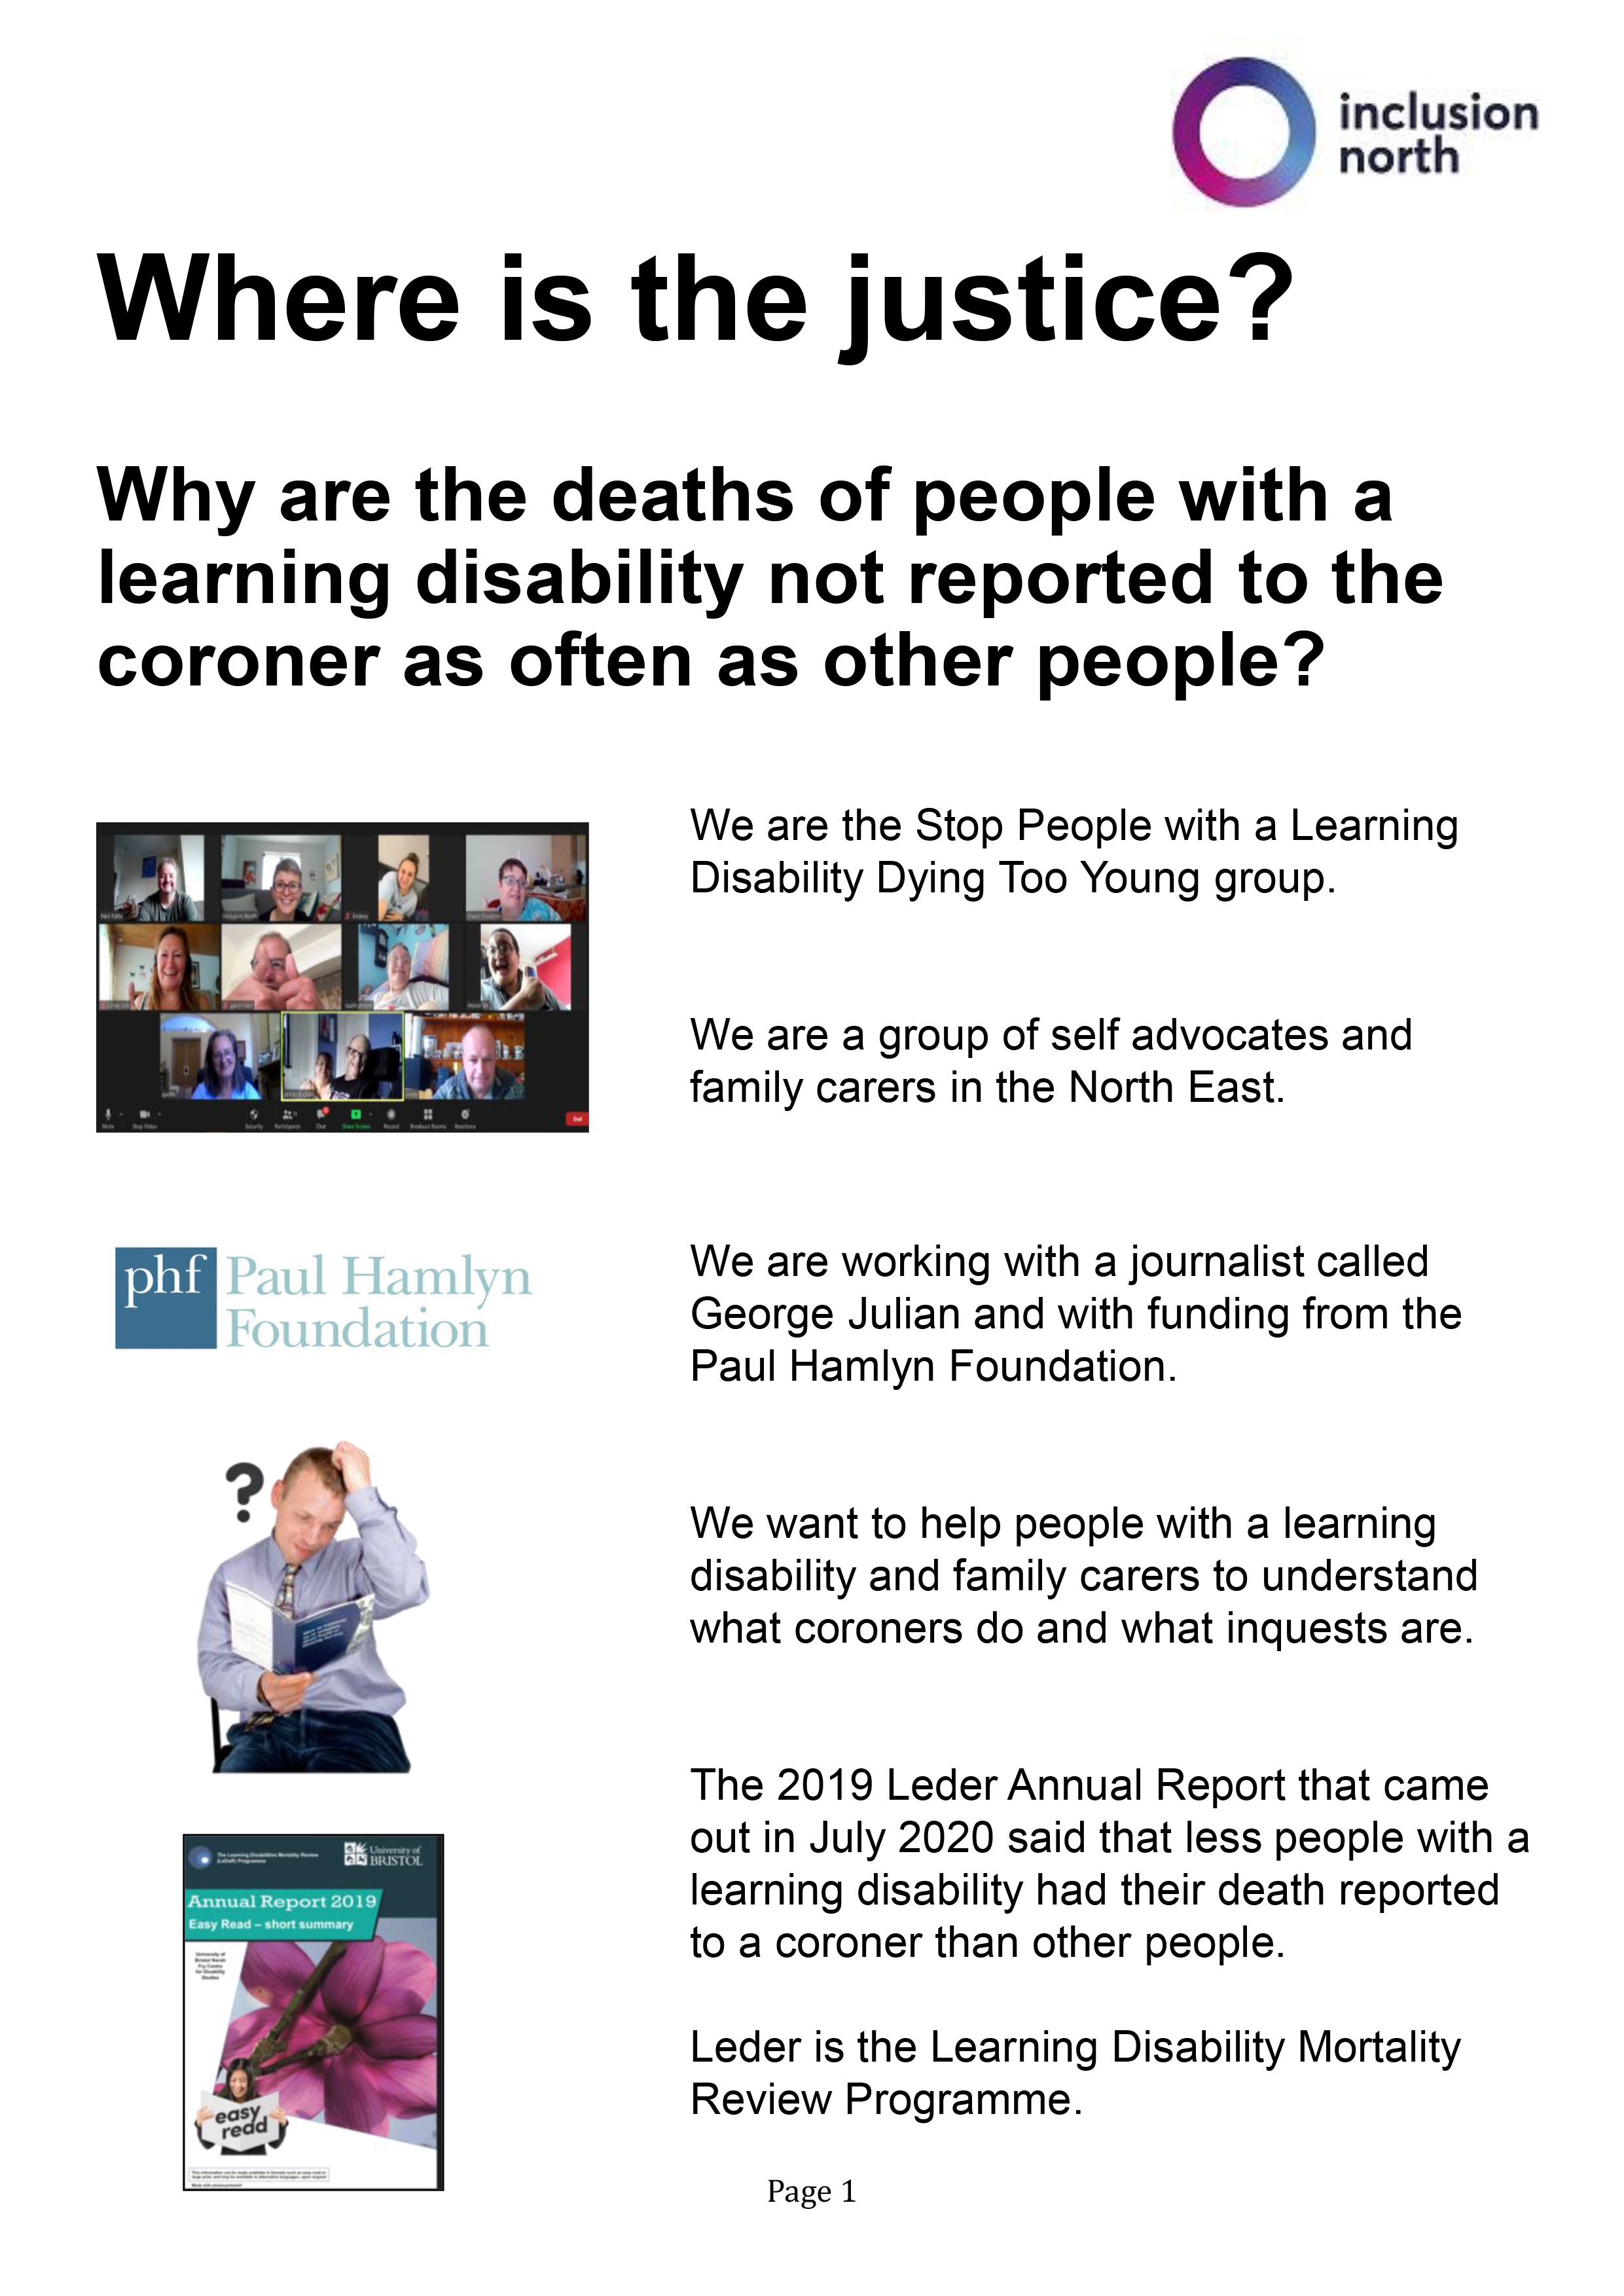 Frontpage of Easy Read Guide about why learning disabled deaths are not reported as often as they should be.